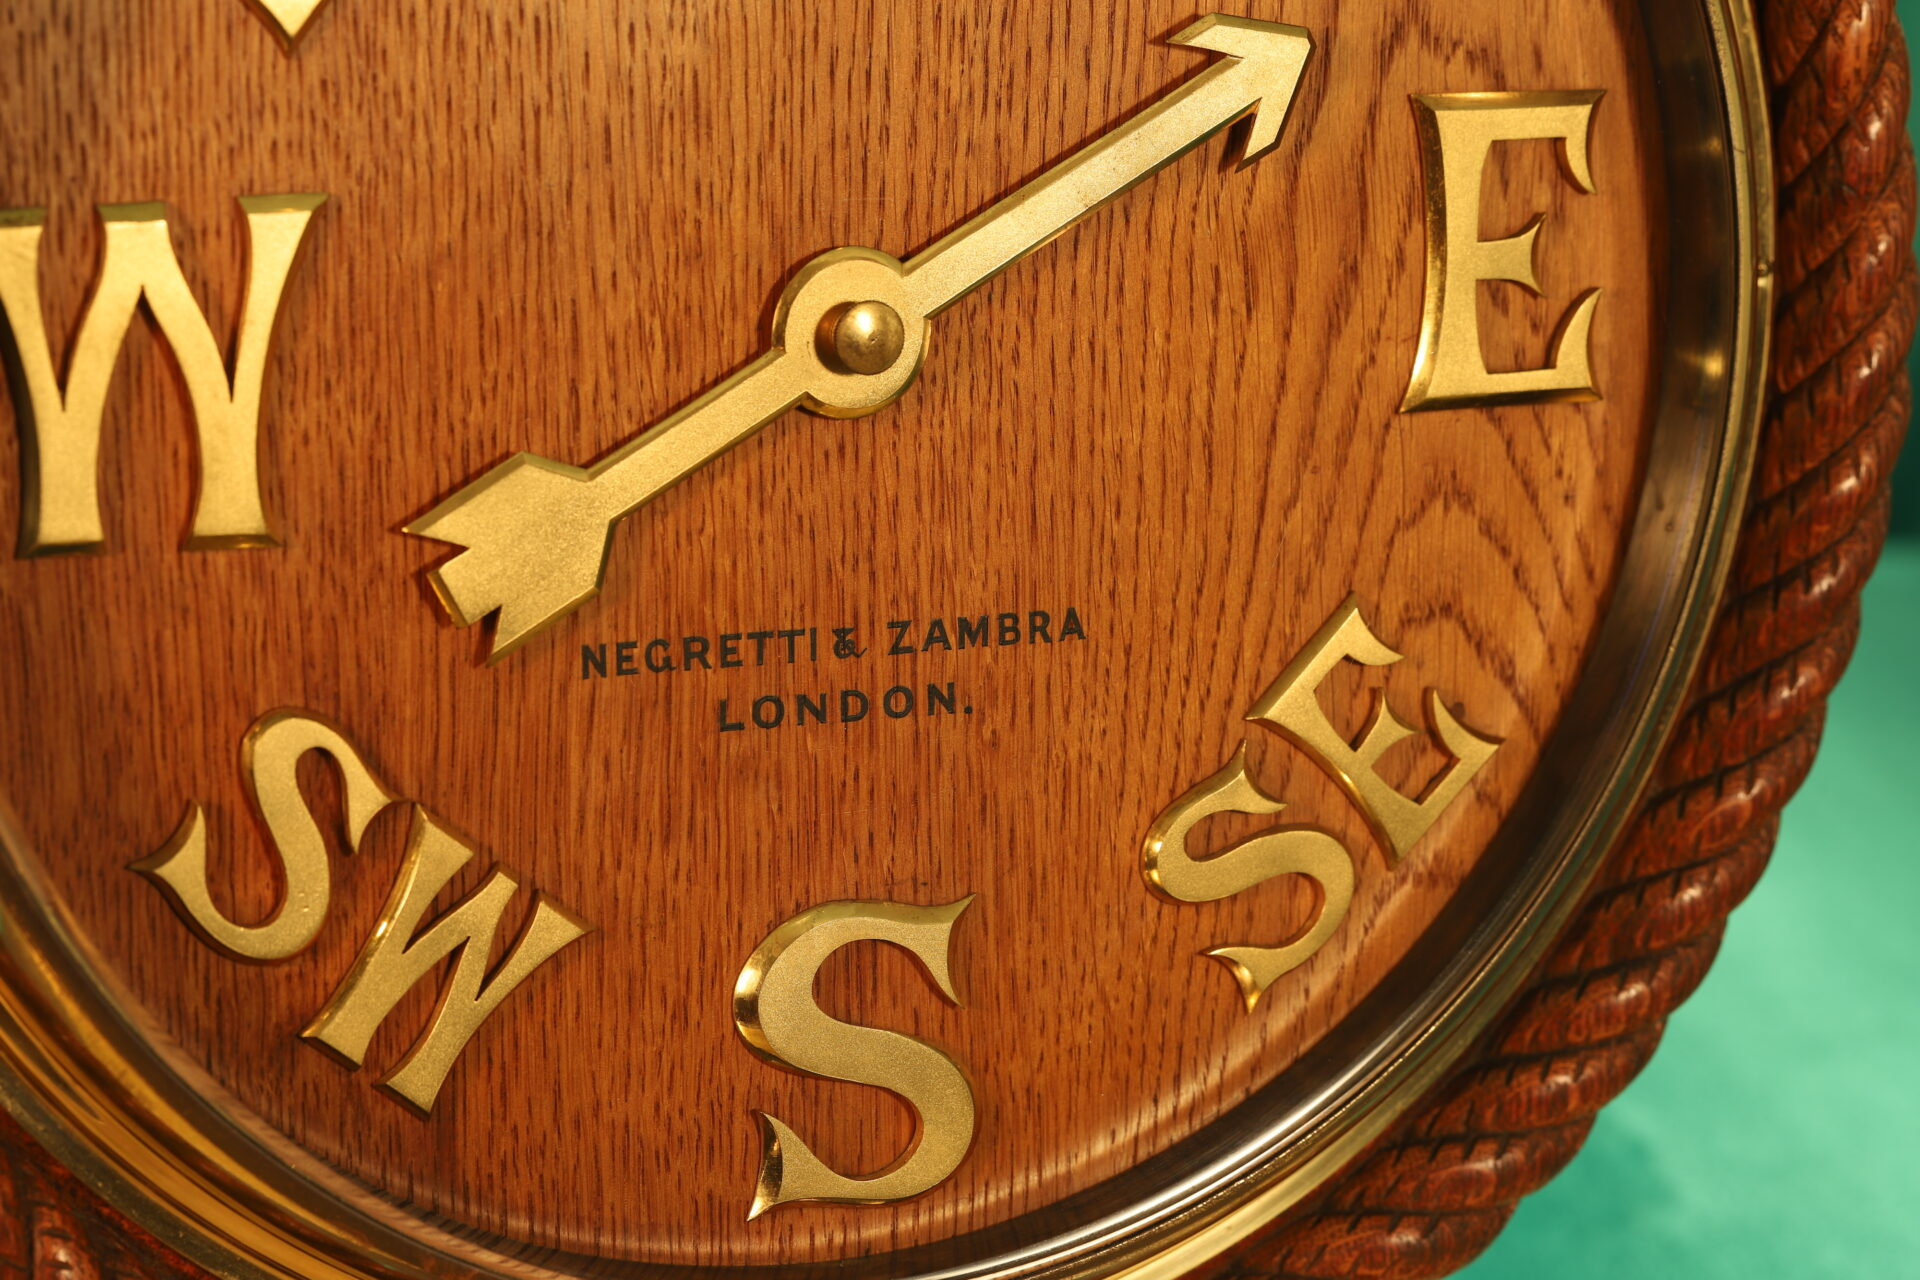 A front shot close up of the lower part of a substantial and beautiful Negretti & Zambra wind indicator